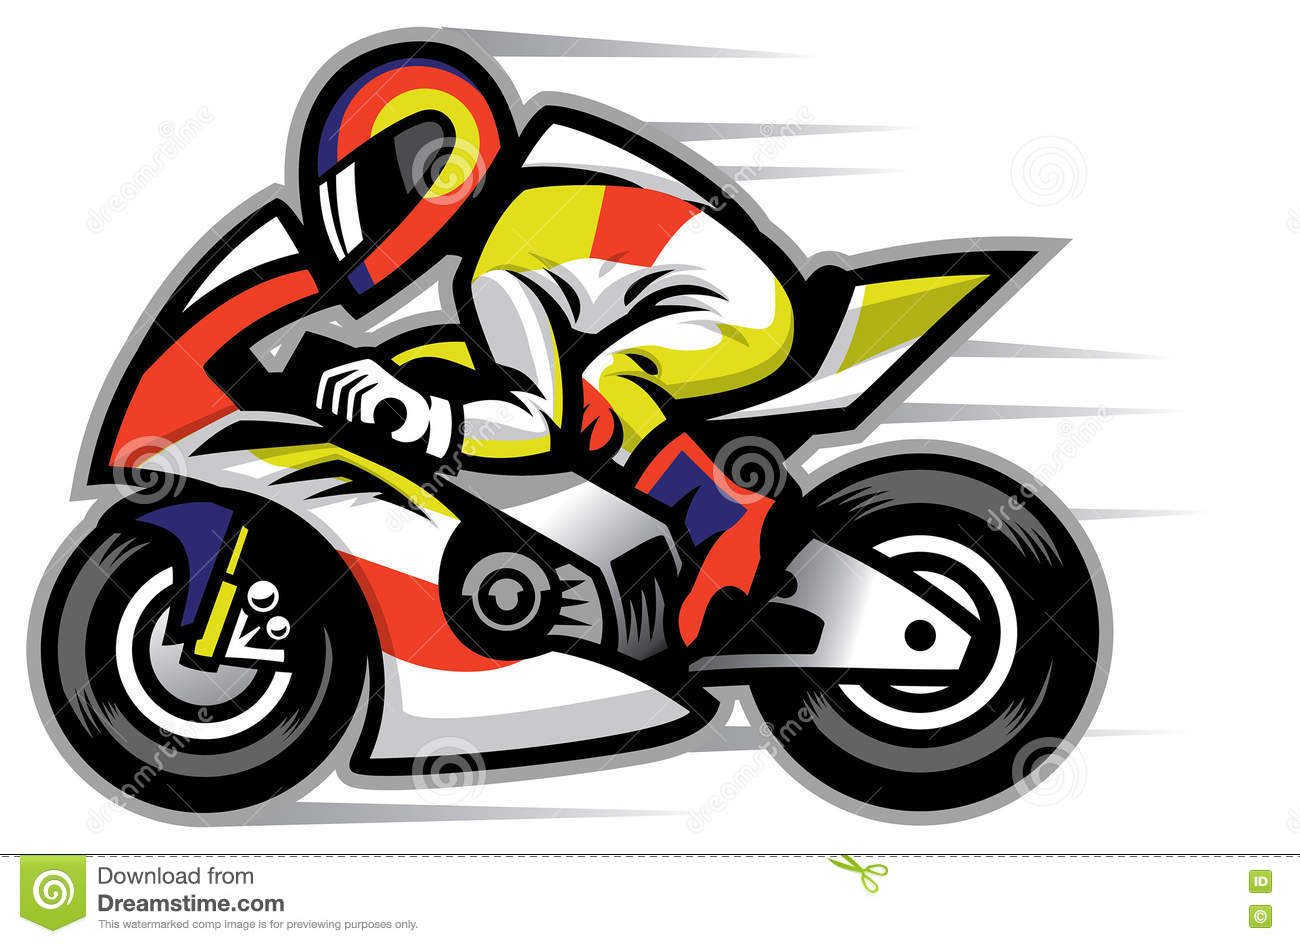 Motorcycle race mascot stock vector. Illustration of ...